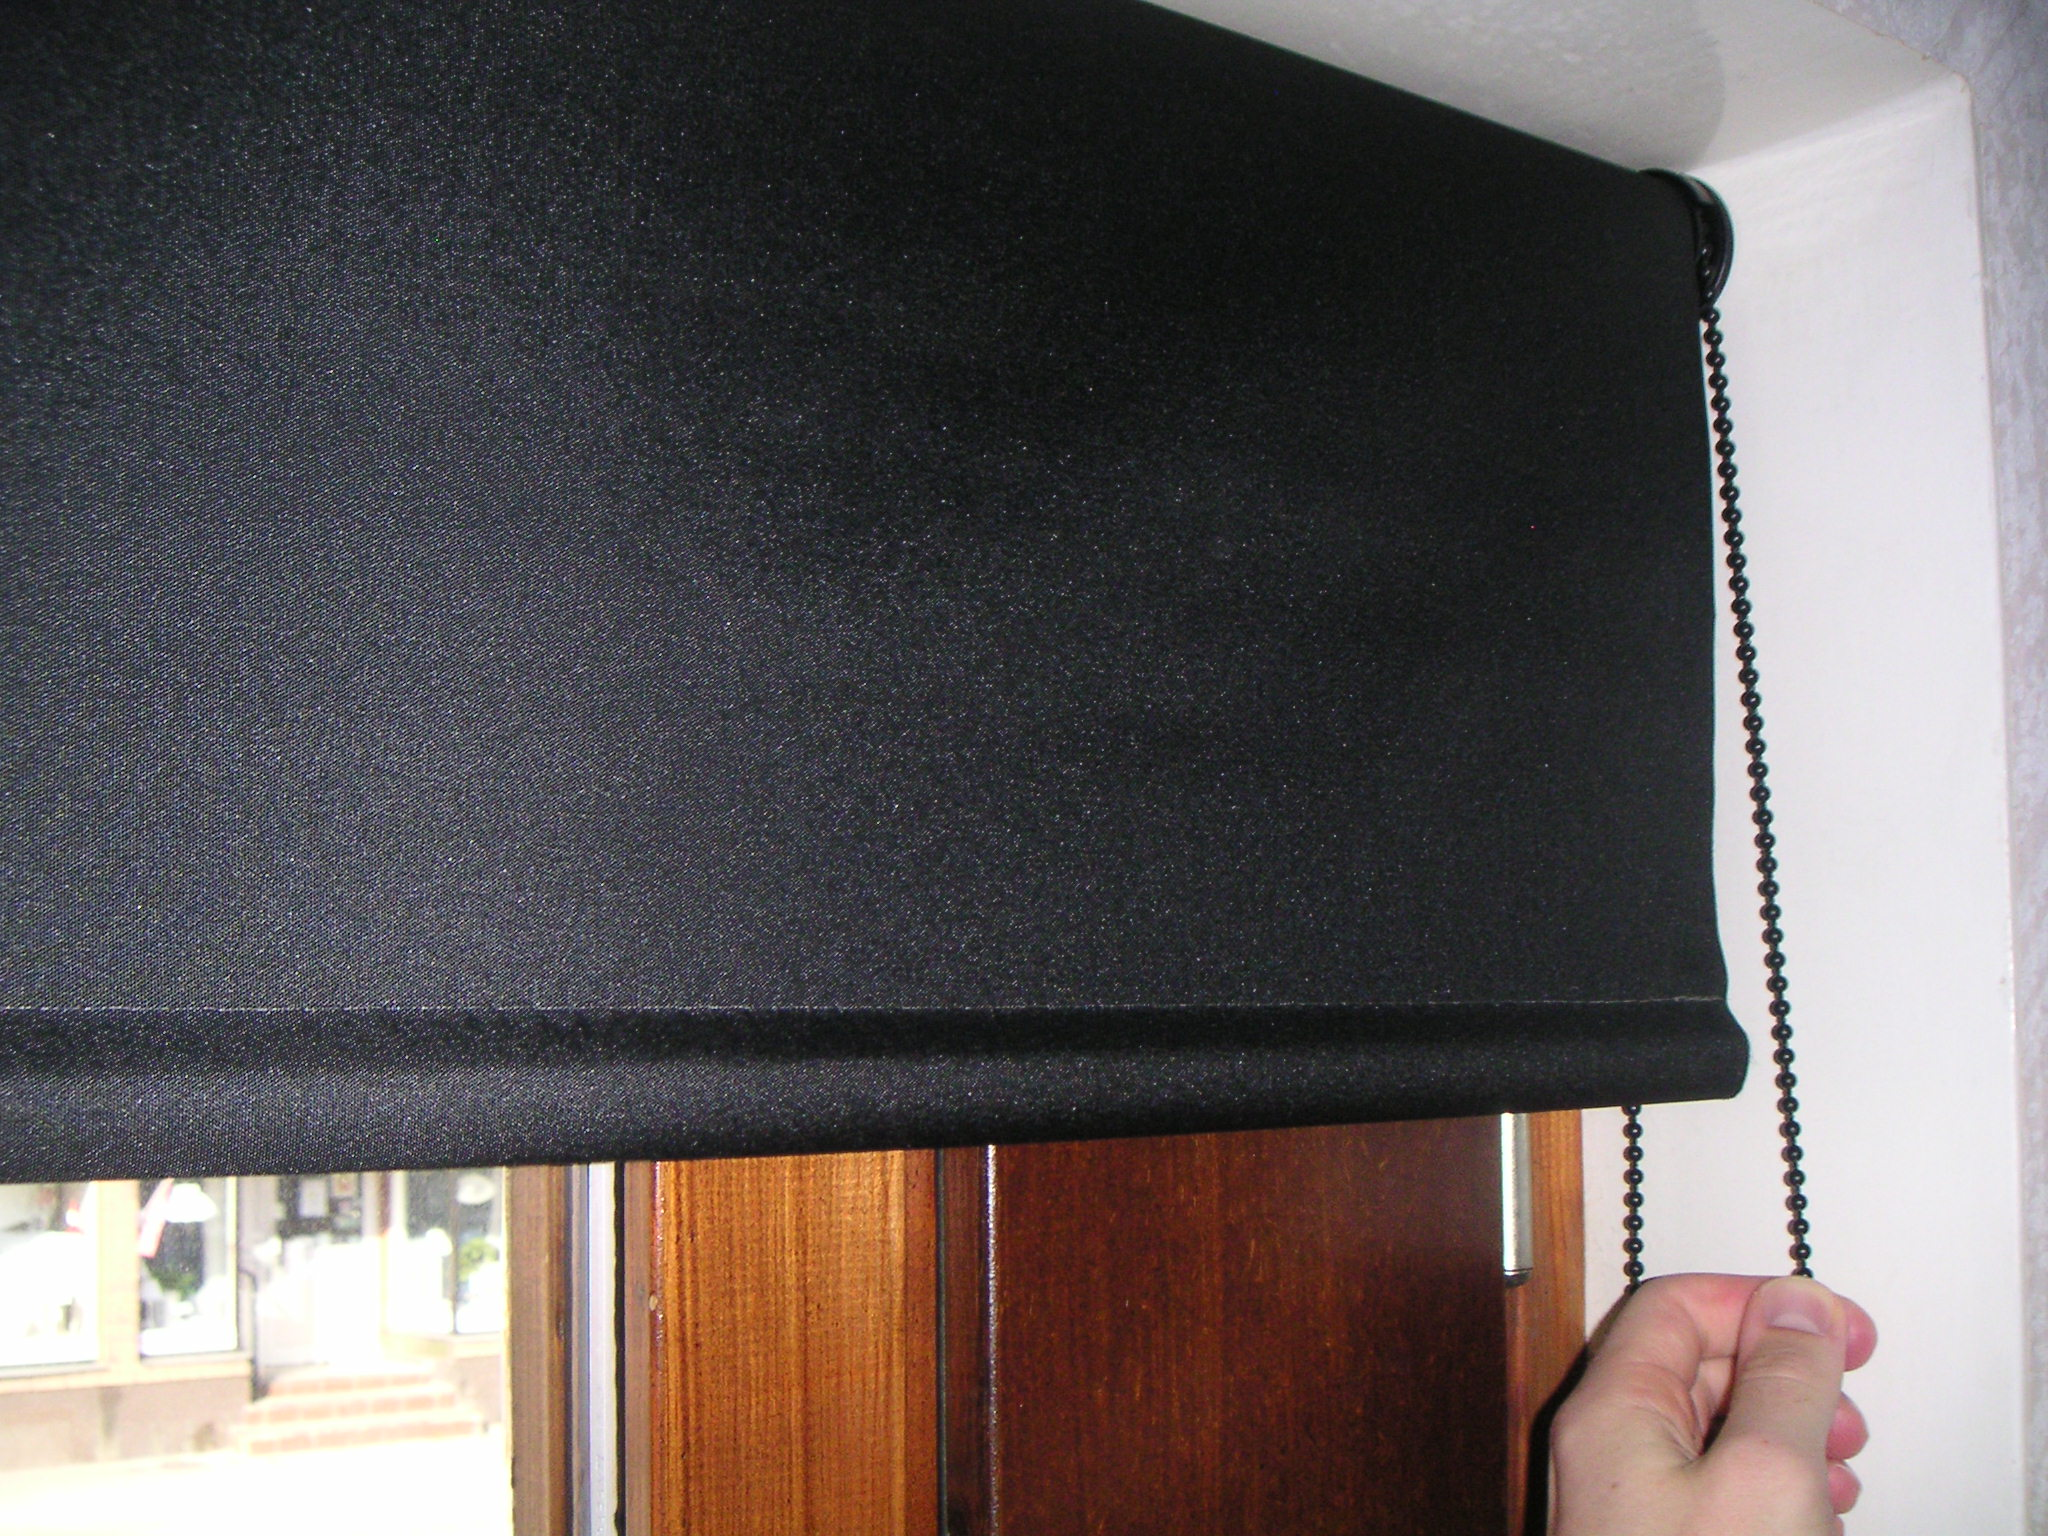 File:Roll-down curtain 2.JPG - Wikipedia, the free encyclopedia